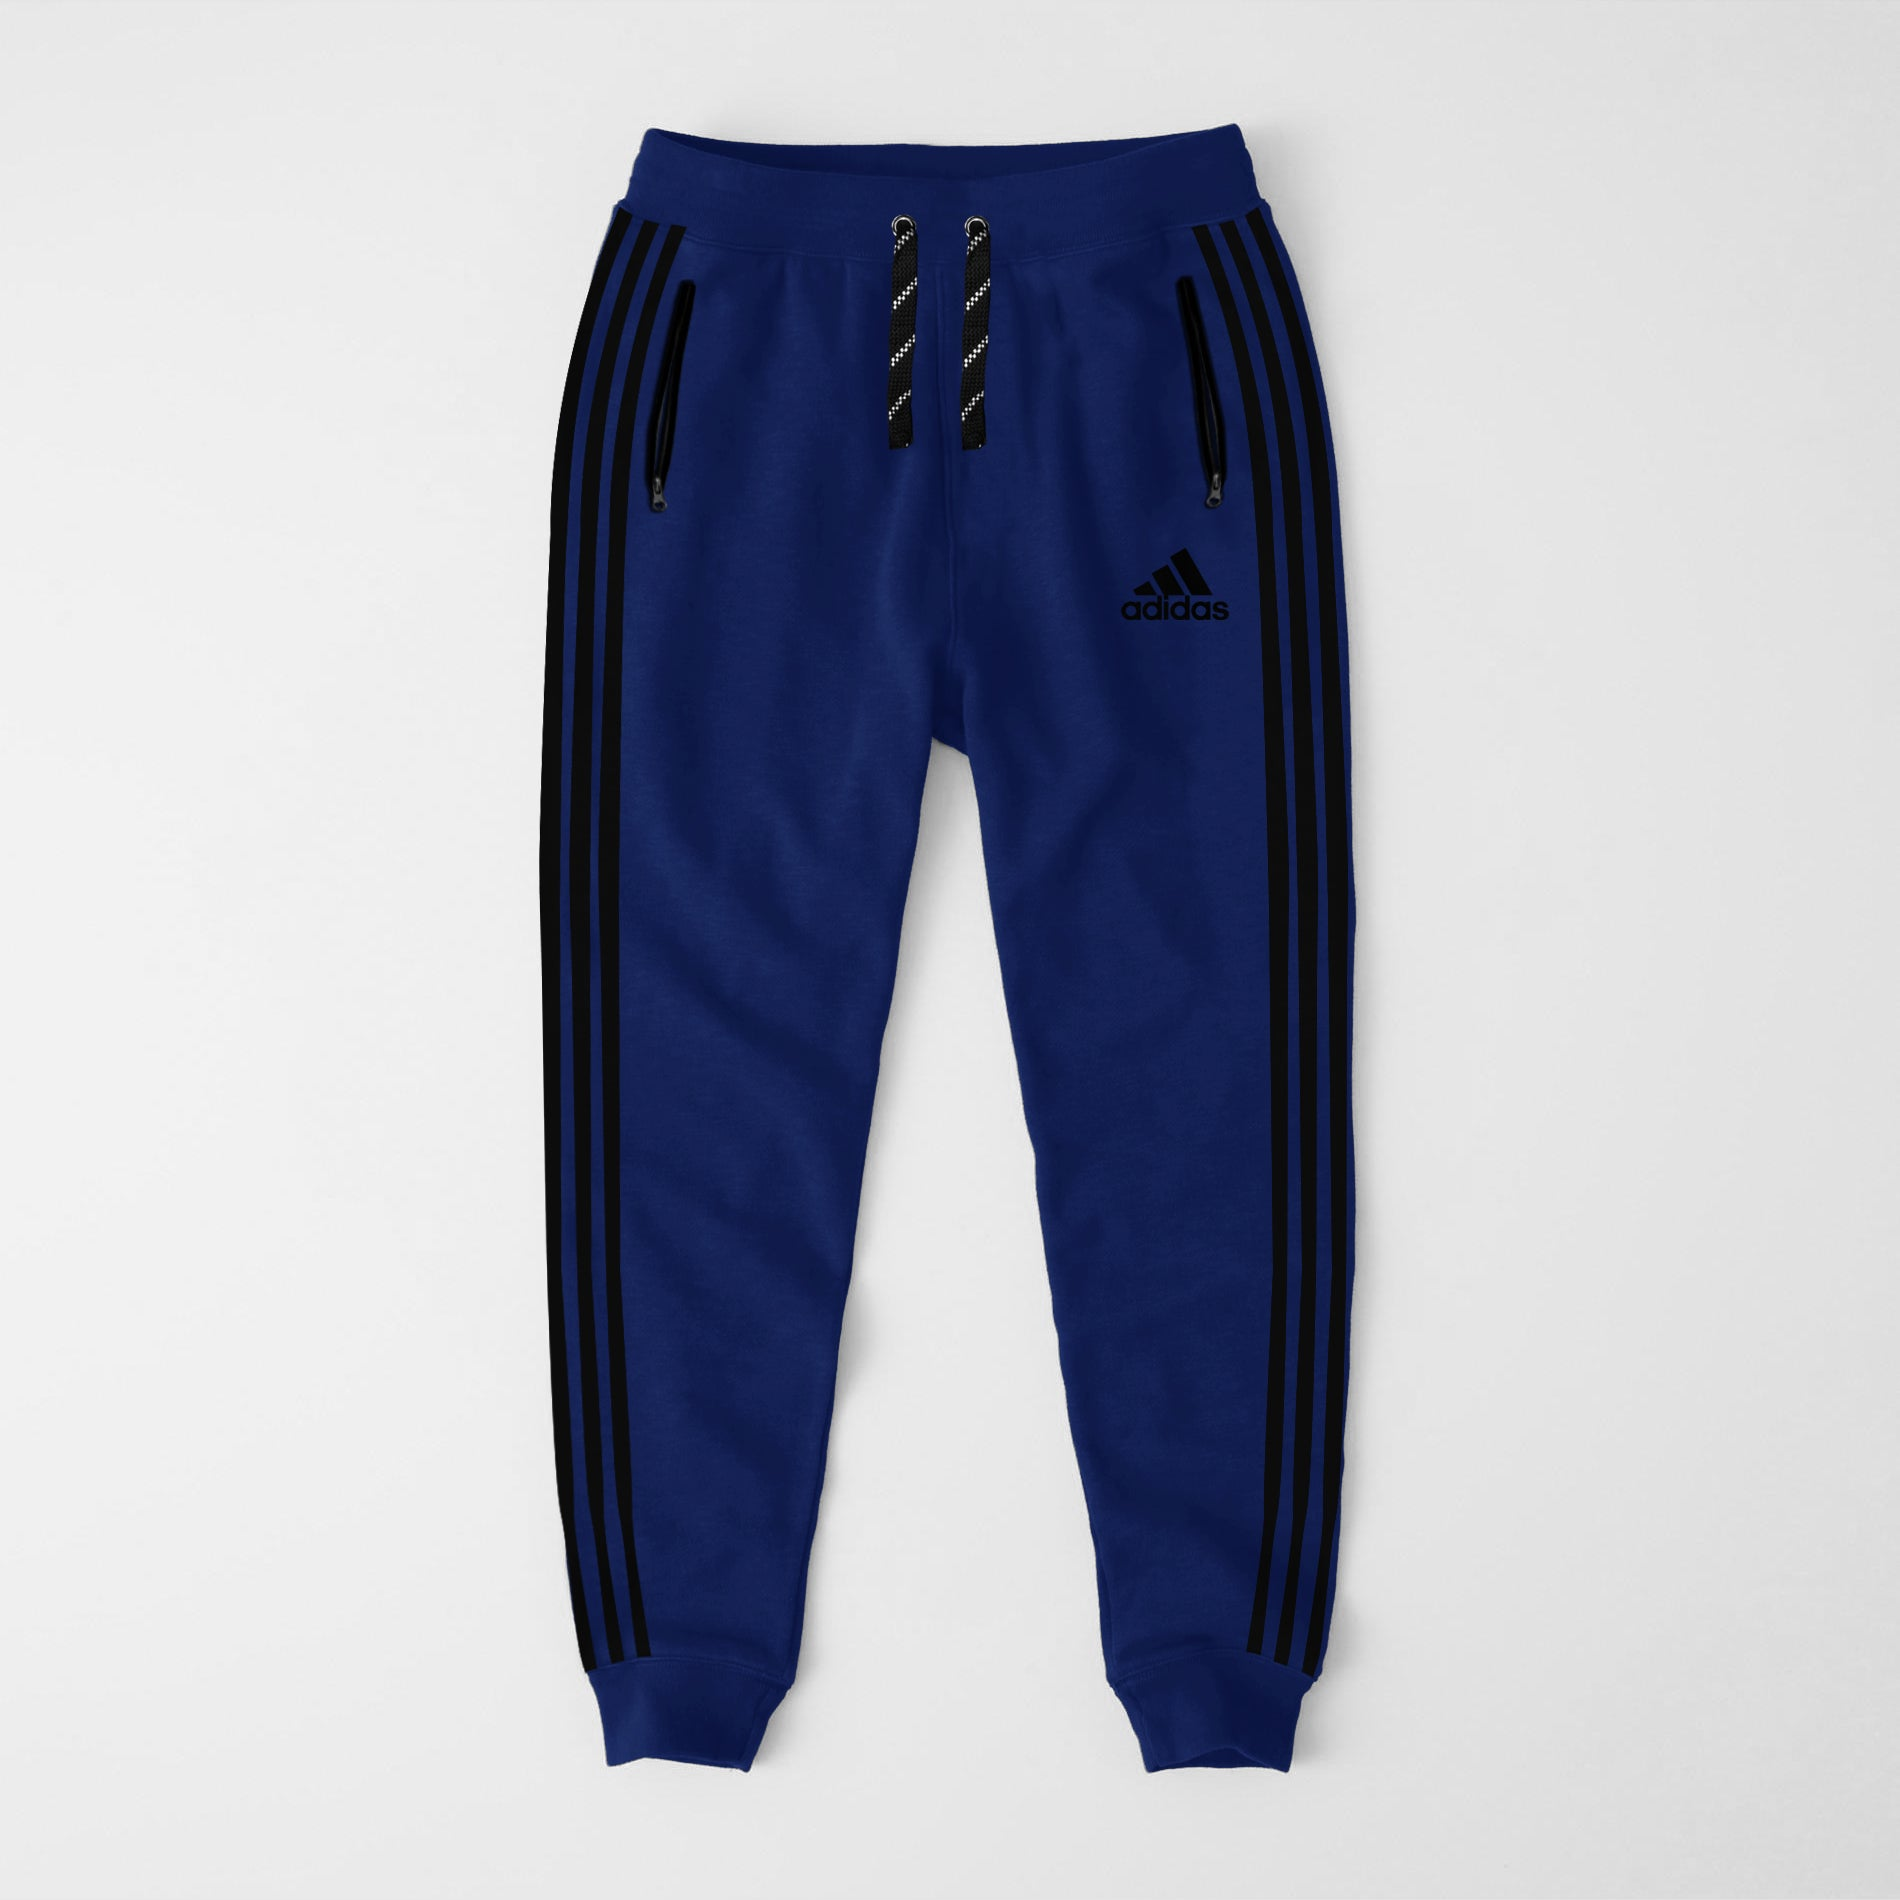 Adidas Single Jersey Slim Fit Jogger Trouser For Men-Royal Blue-NA8242